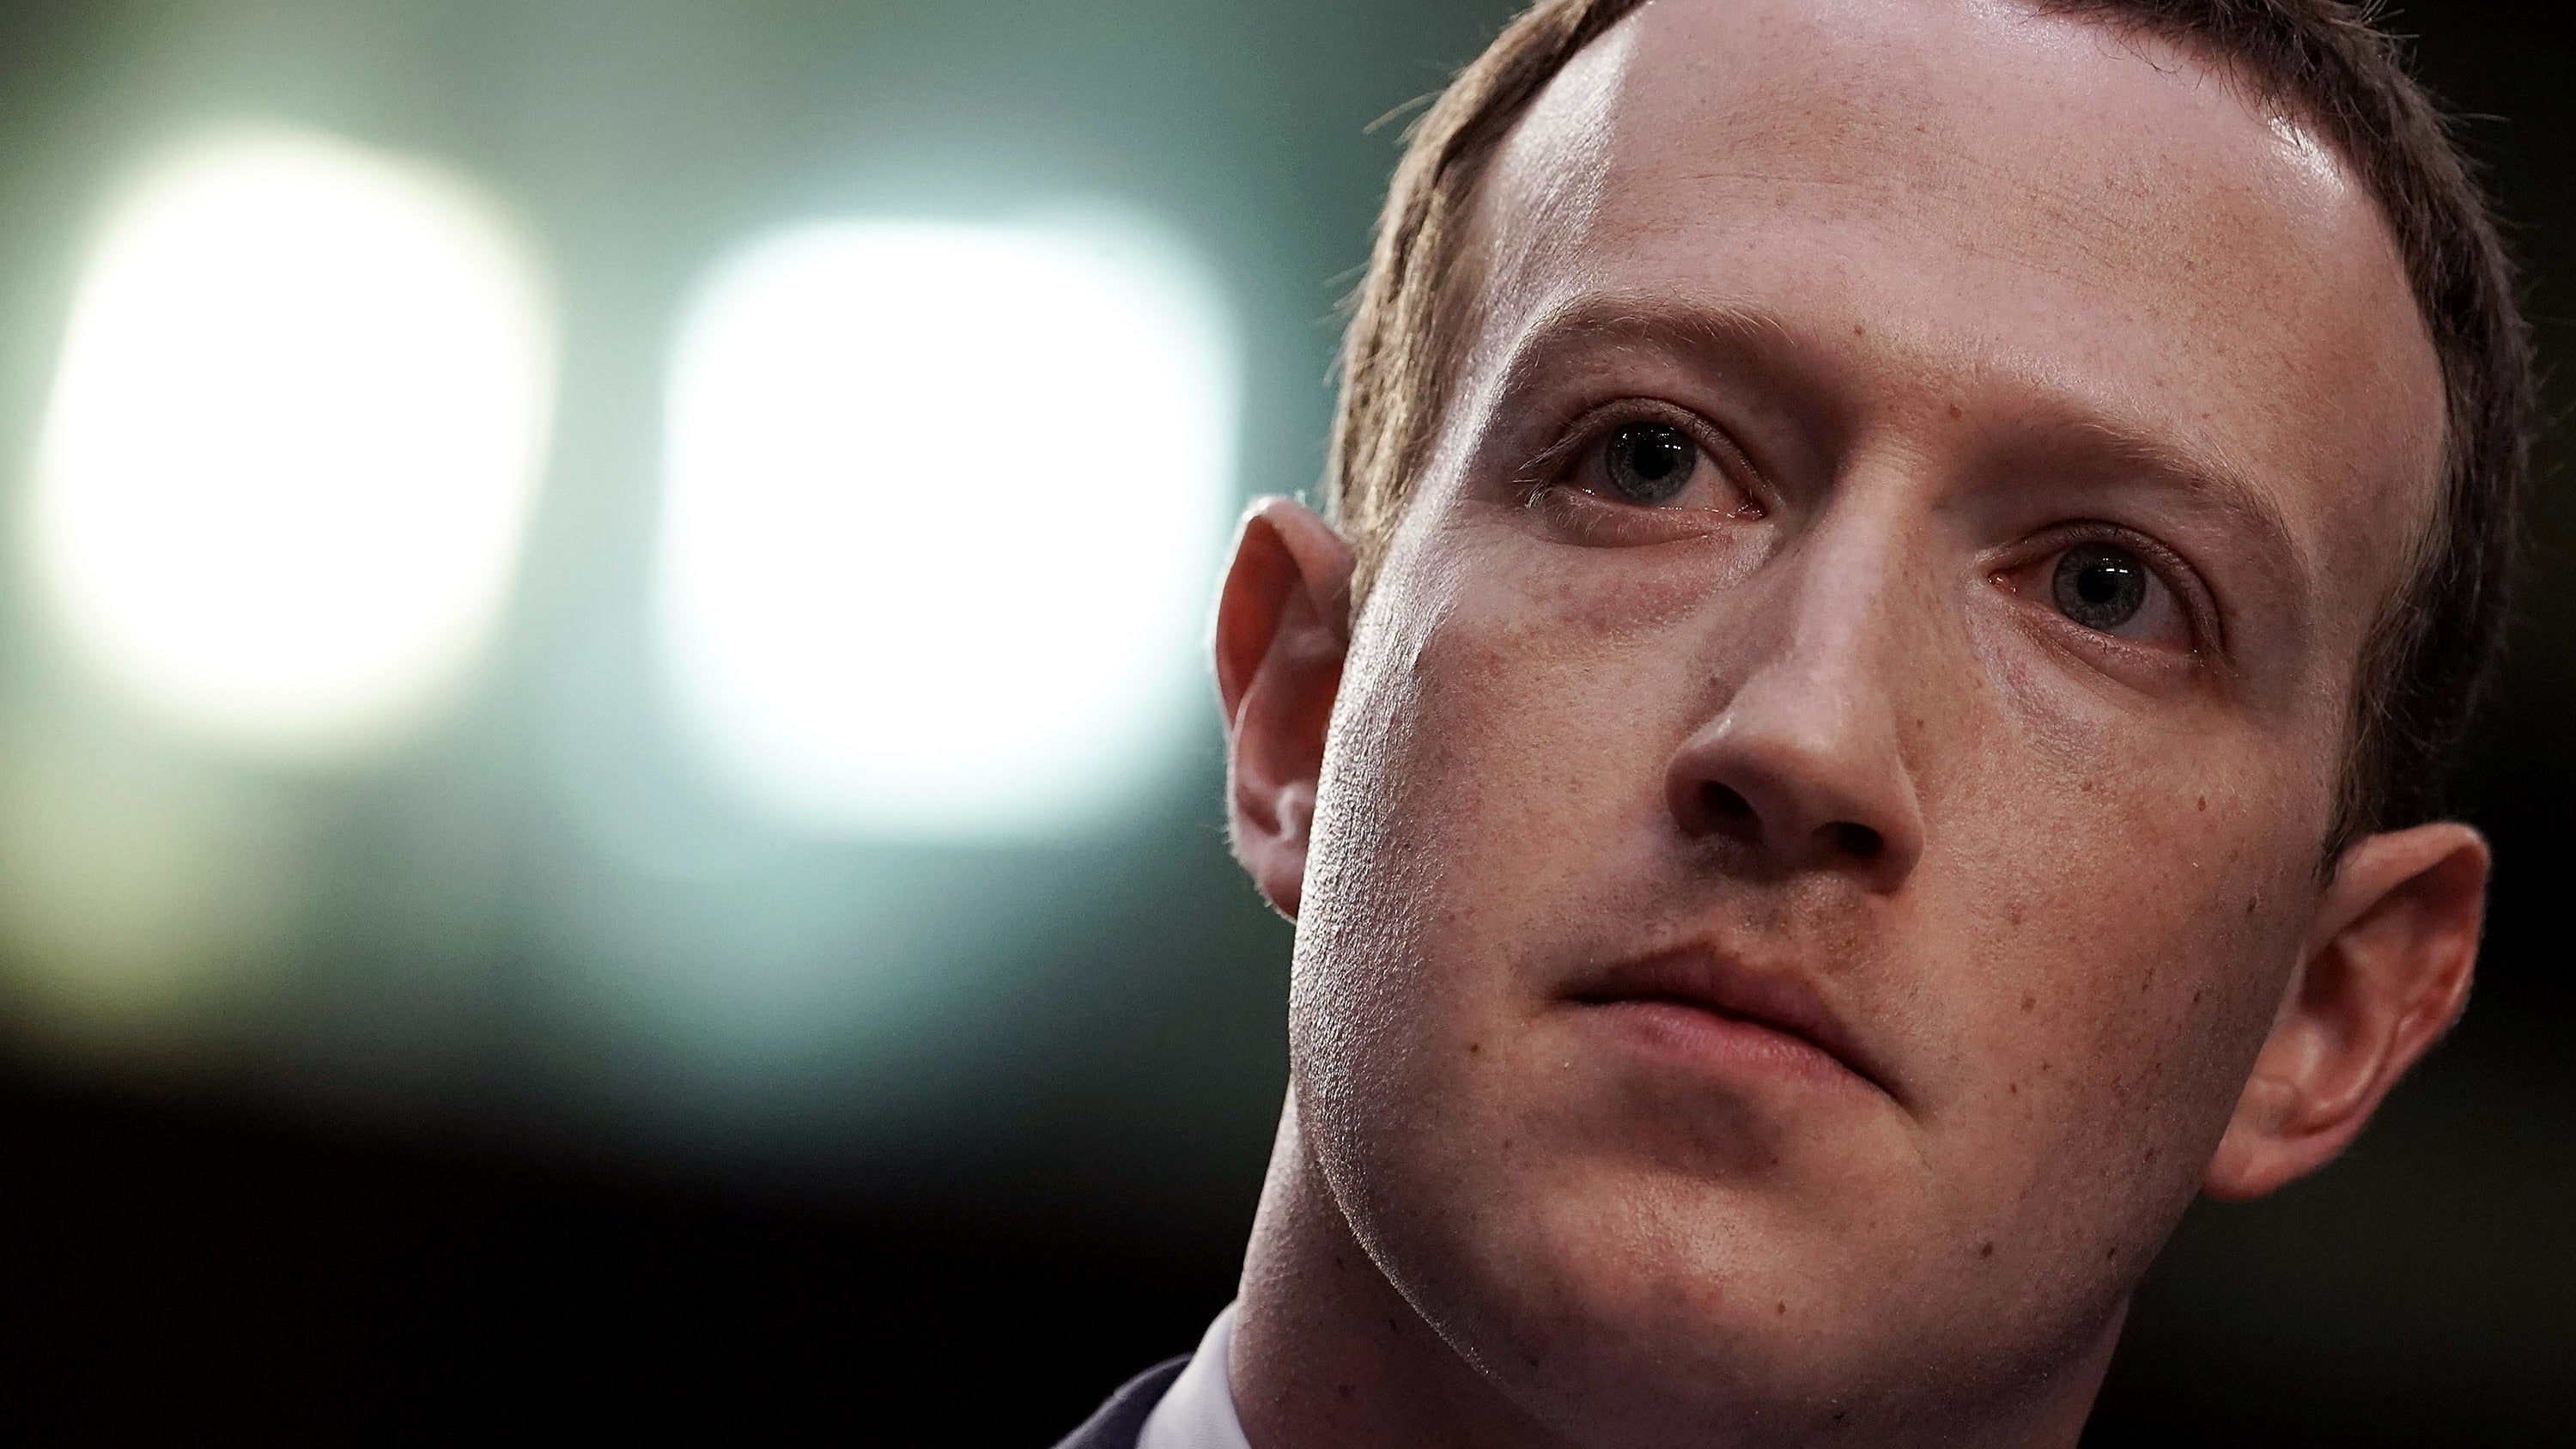 New Australian Law Threatens Prison For Tech Execs Who Allow Violent Content On Their Platforms